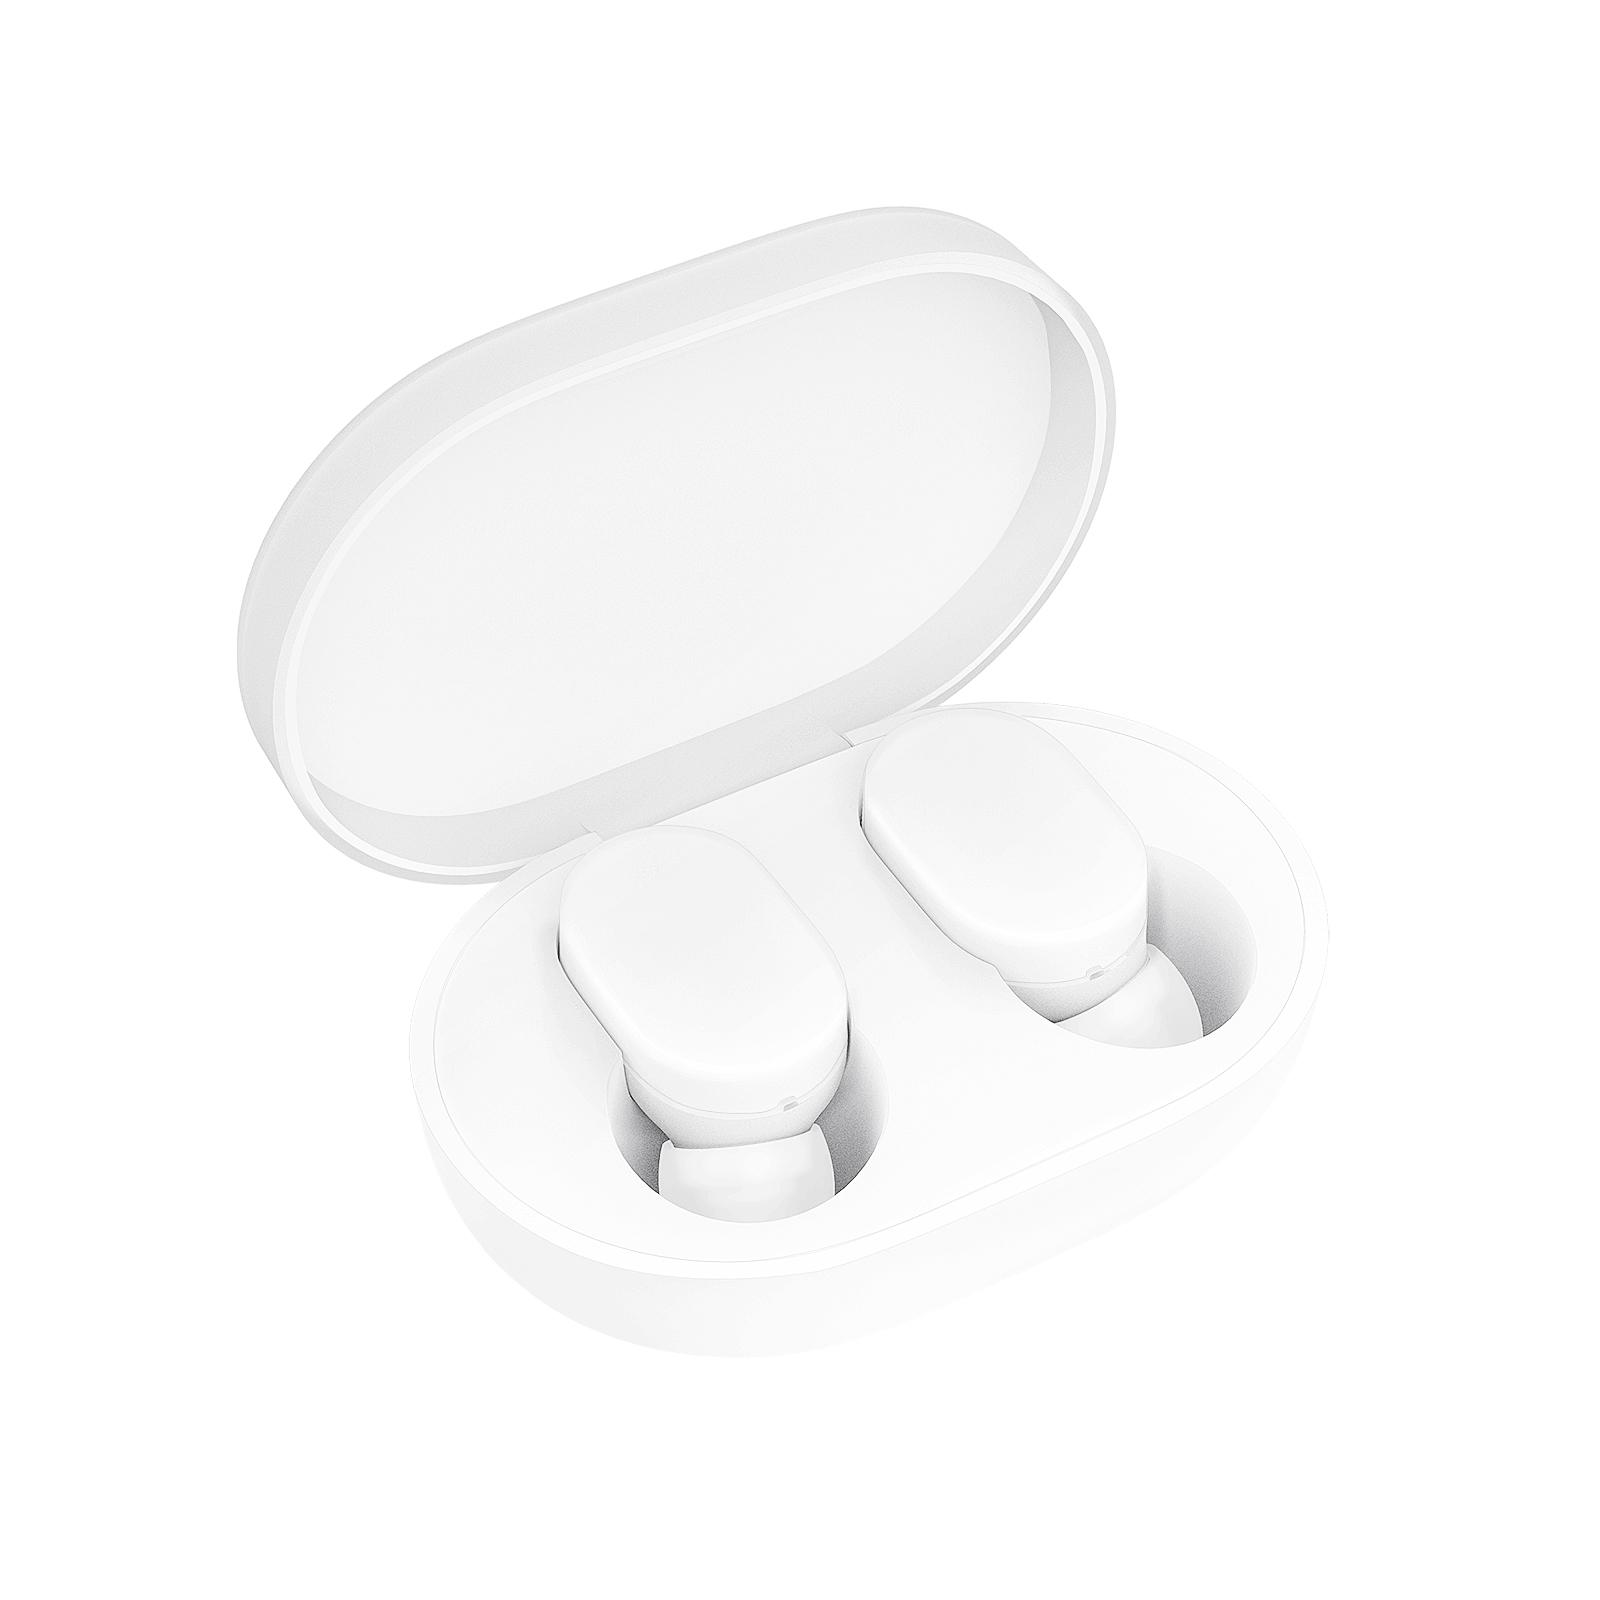 Наушники Xiaomi Mi AirDots Youth Edition: Фото 1